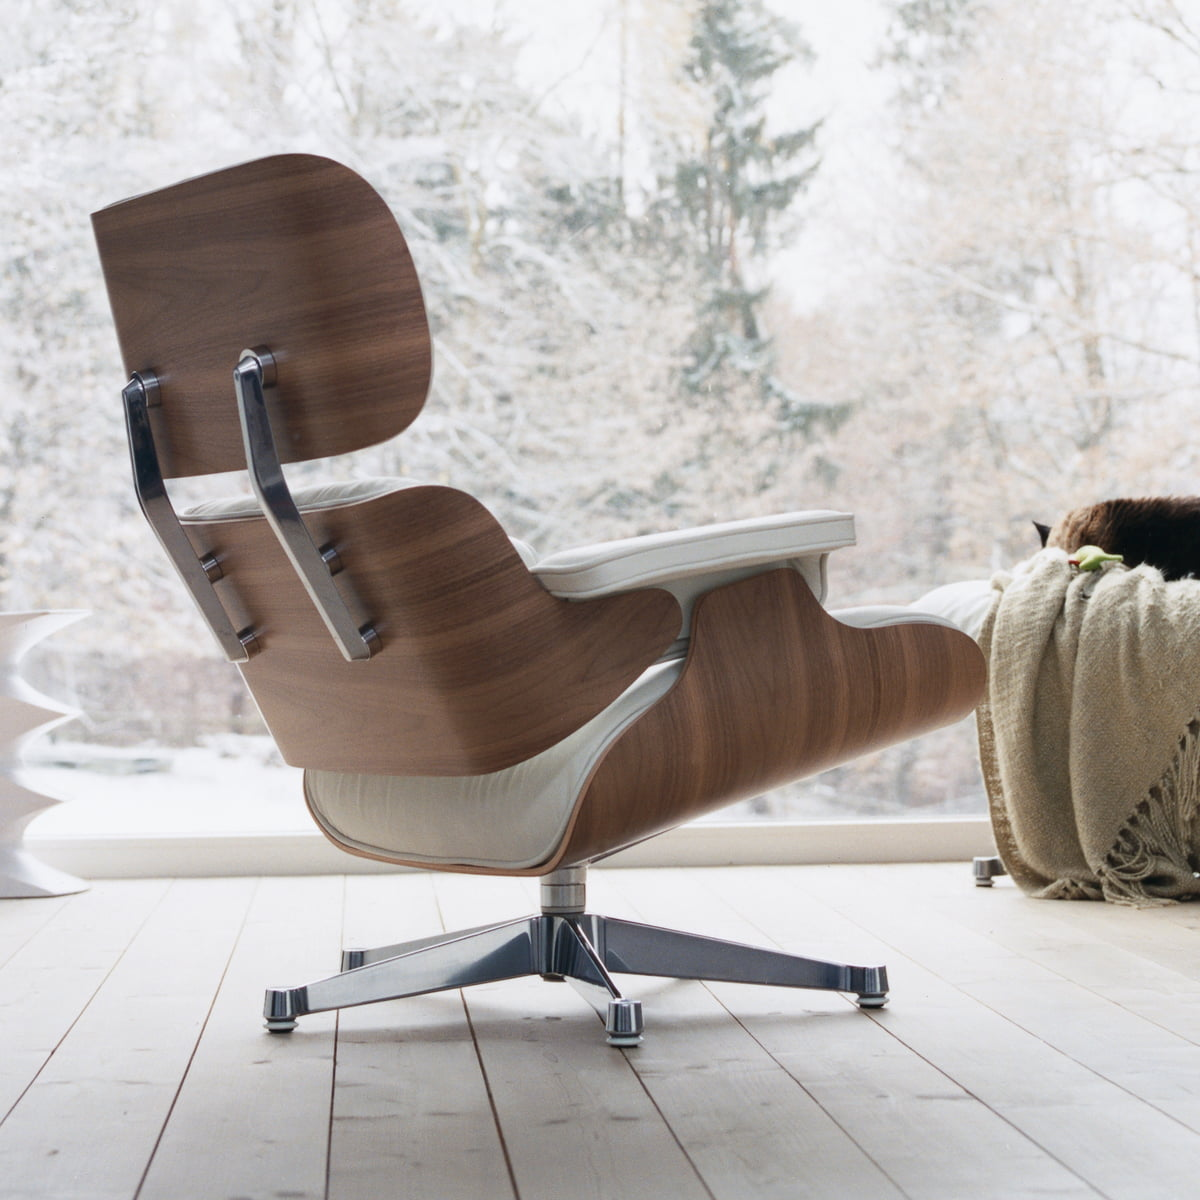 GroBartig Vitra Chair With Premium Leather And Comfortable Padding